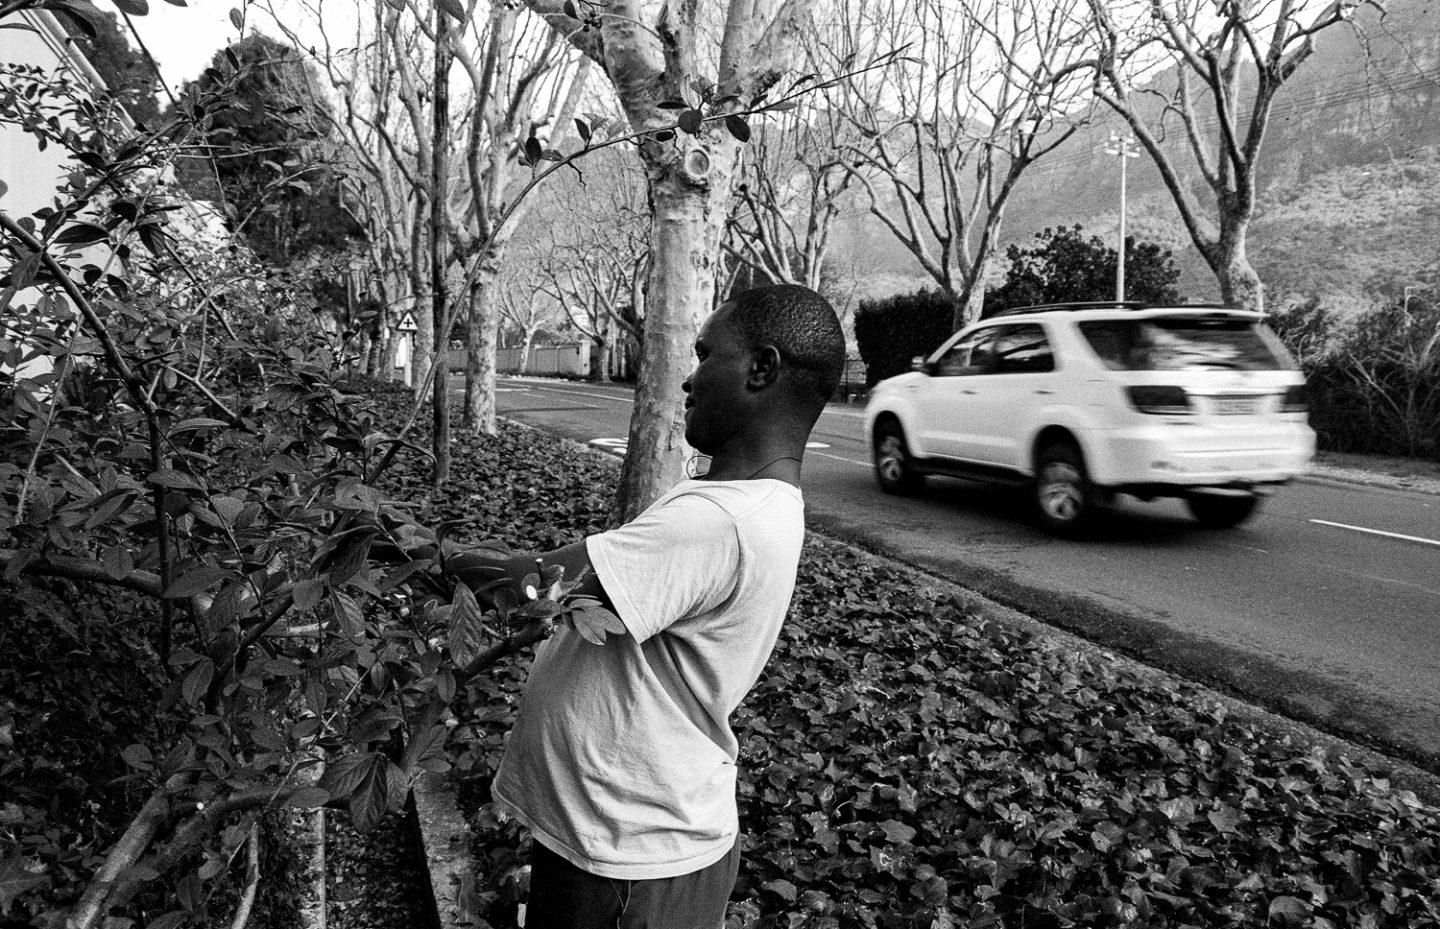 Domestic worker cutting hedges, Bishop's Court, 2009.